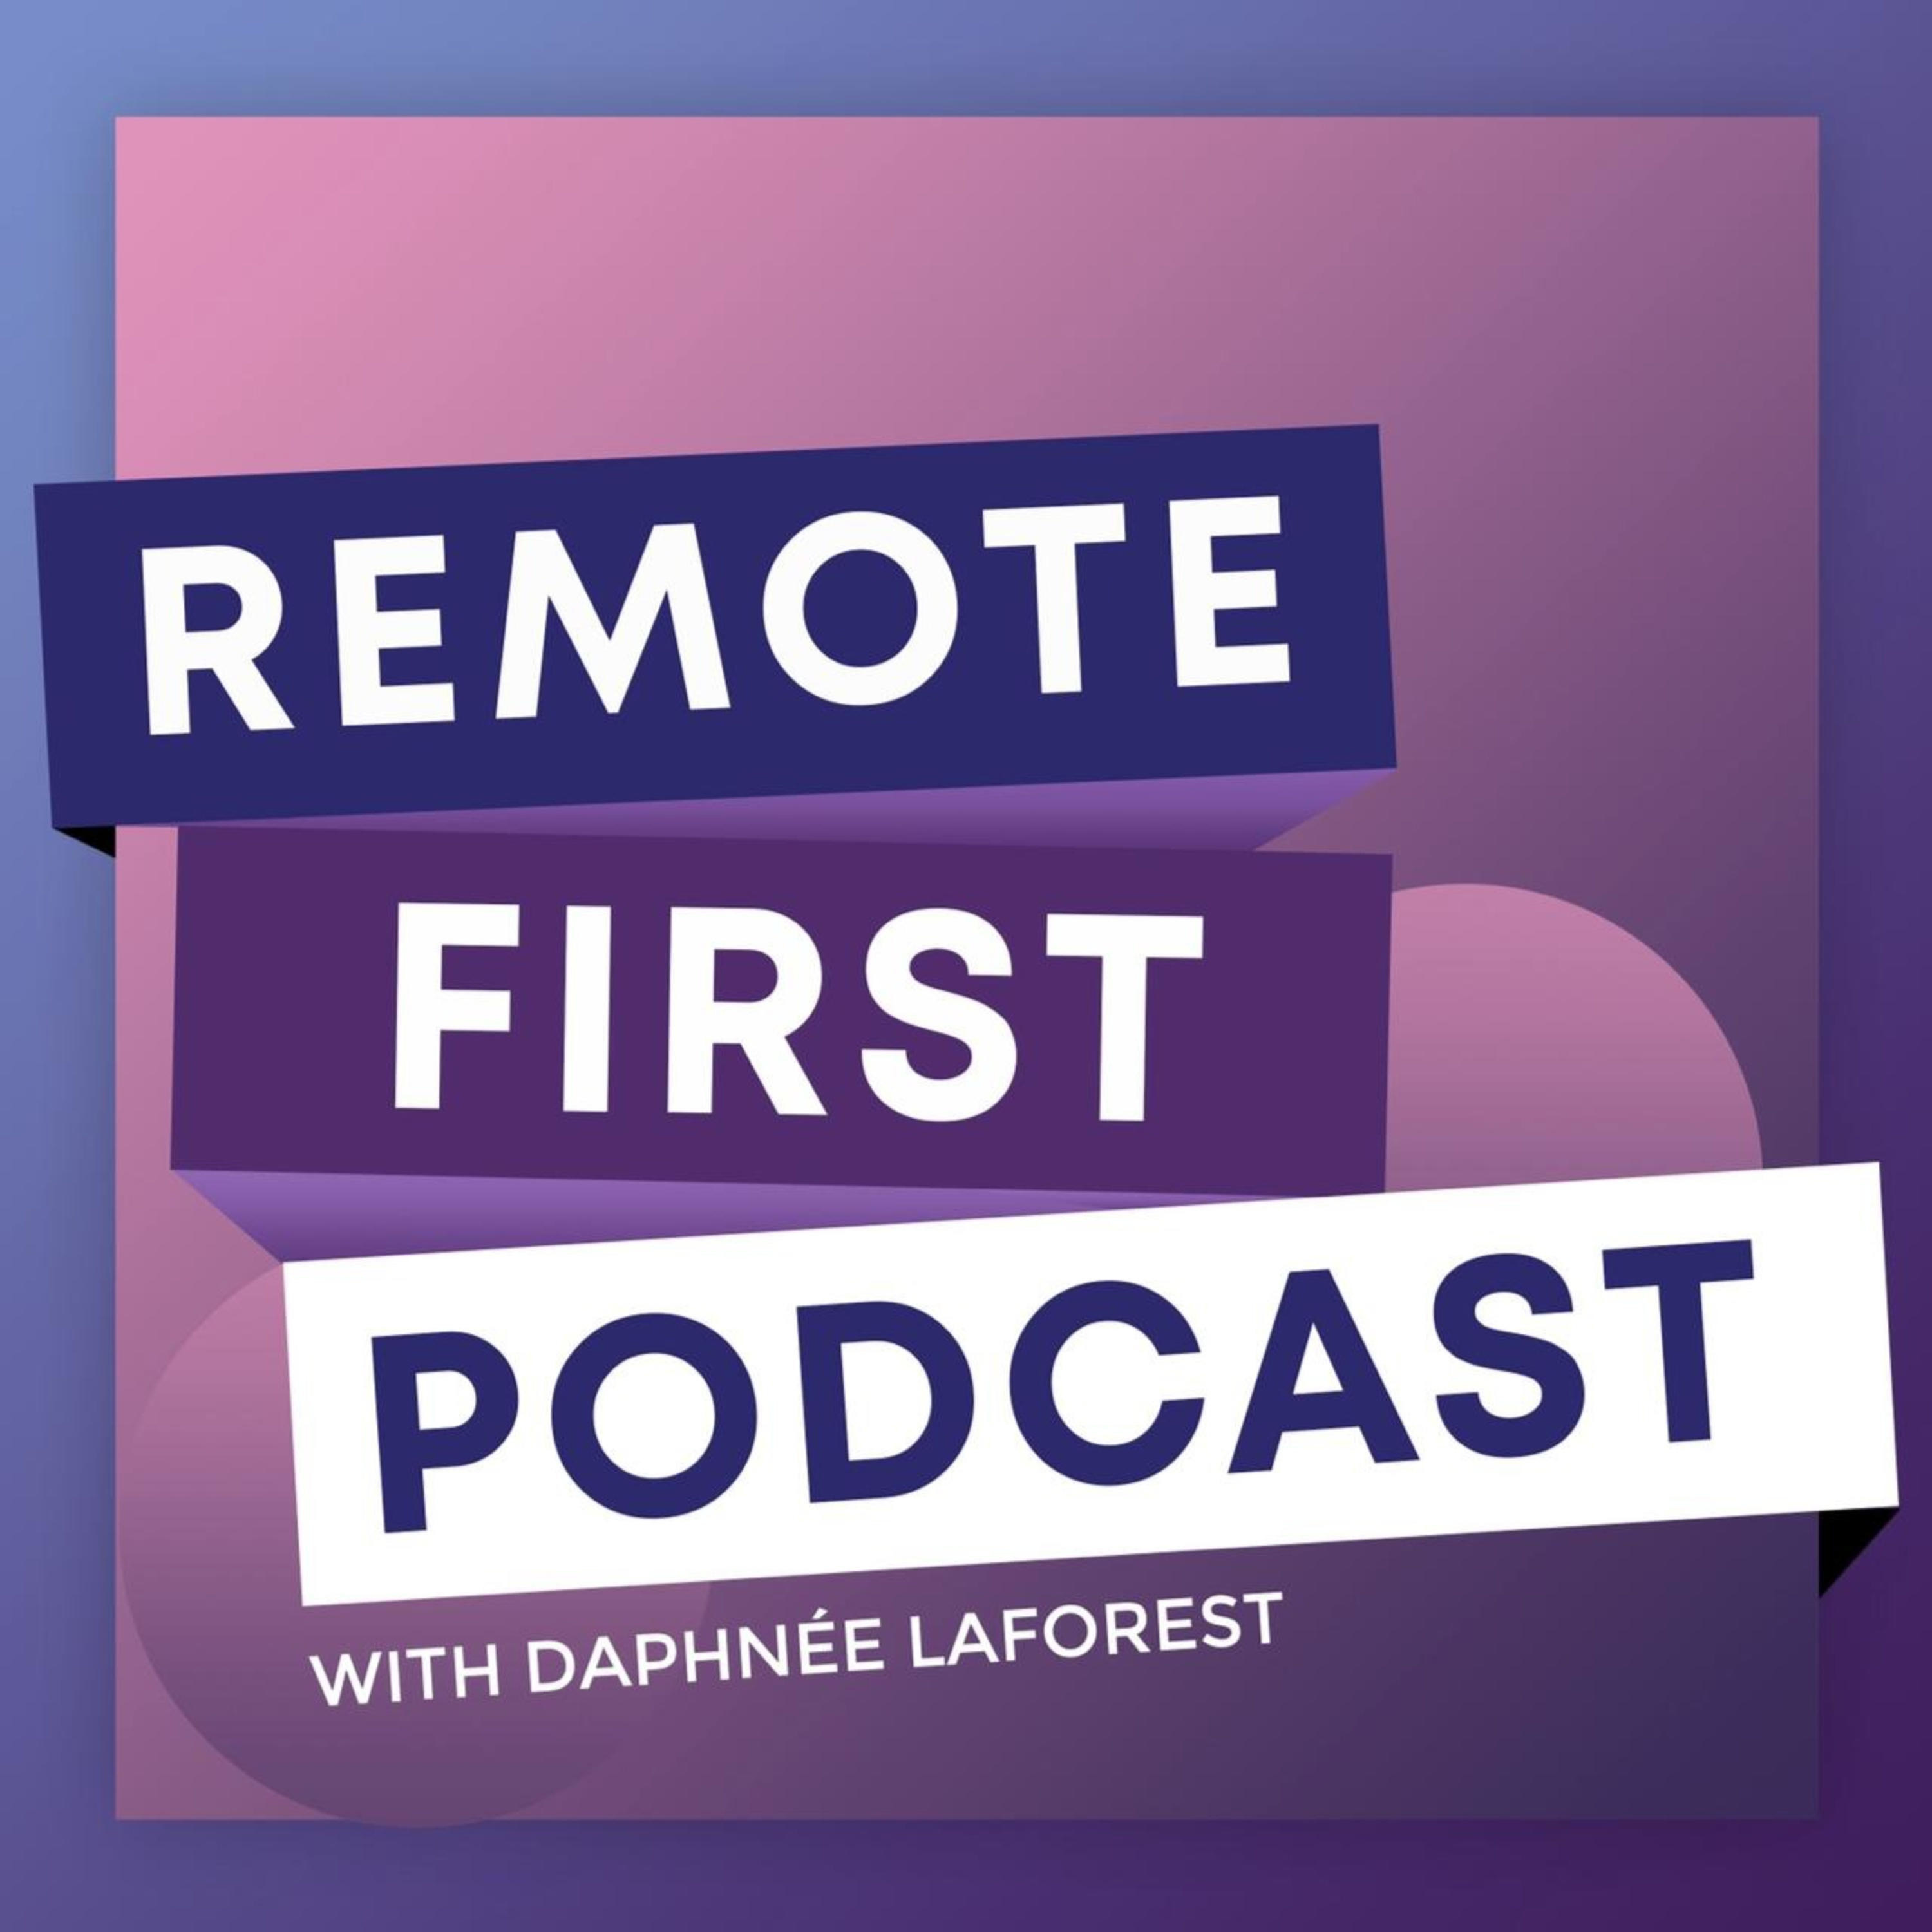 Remote First Podcast